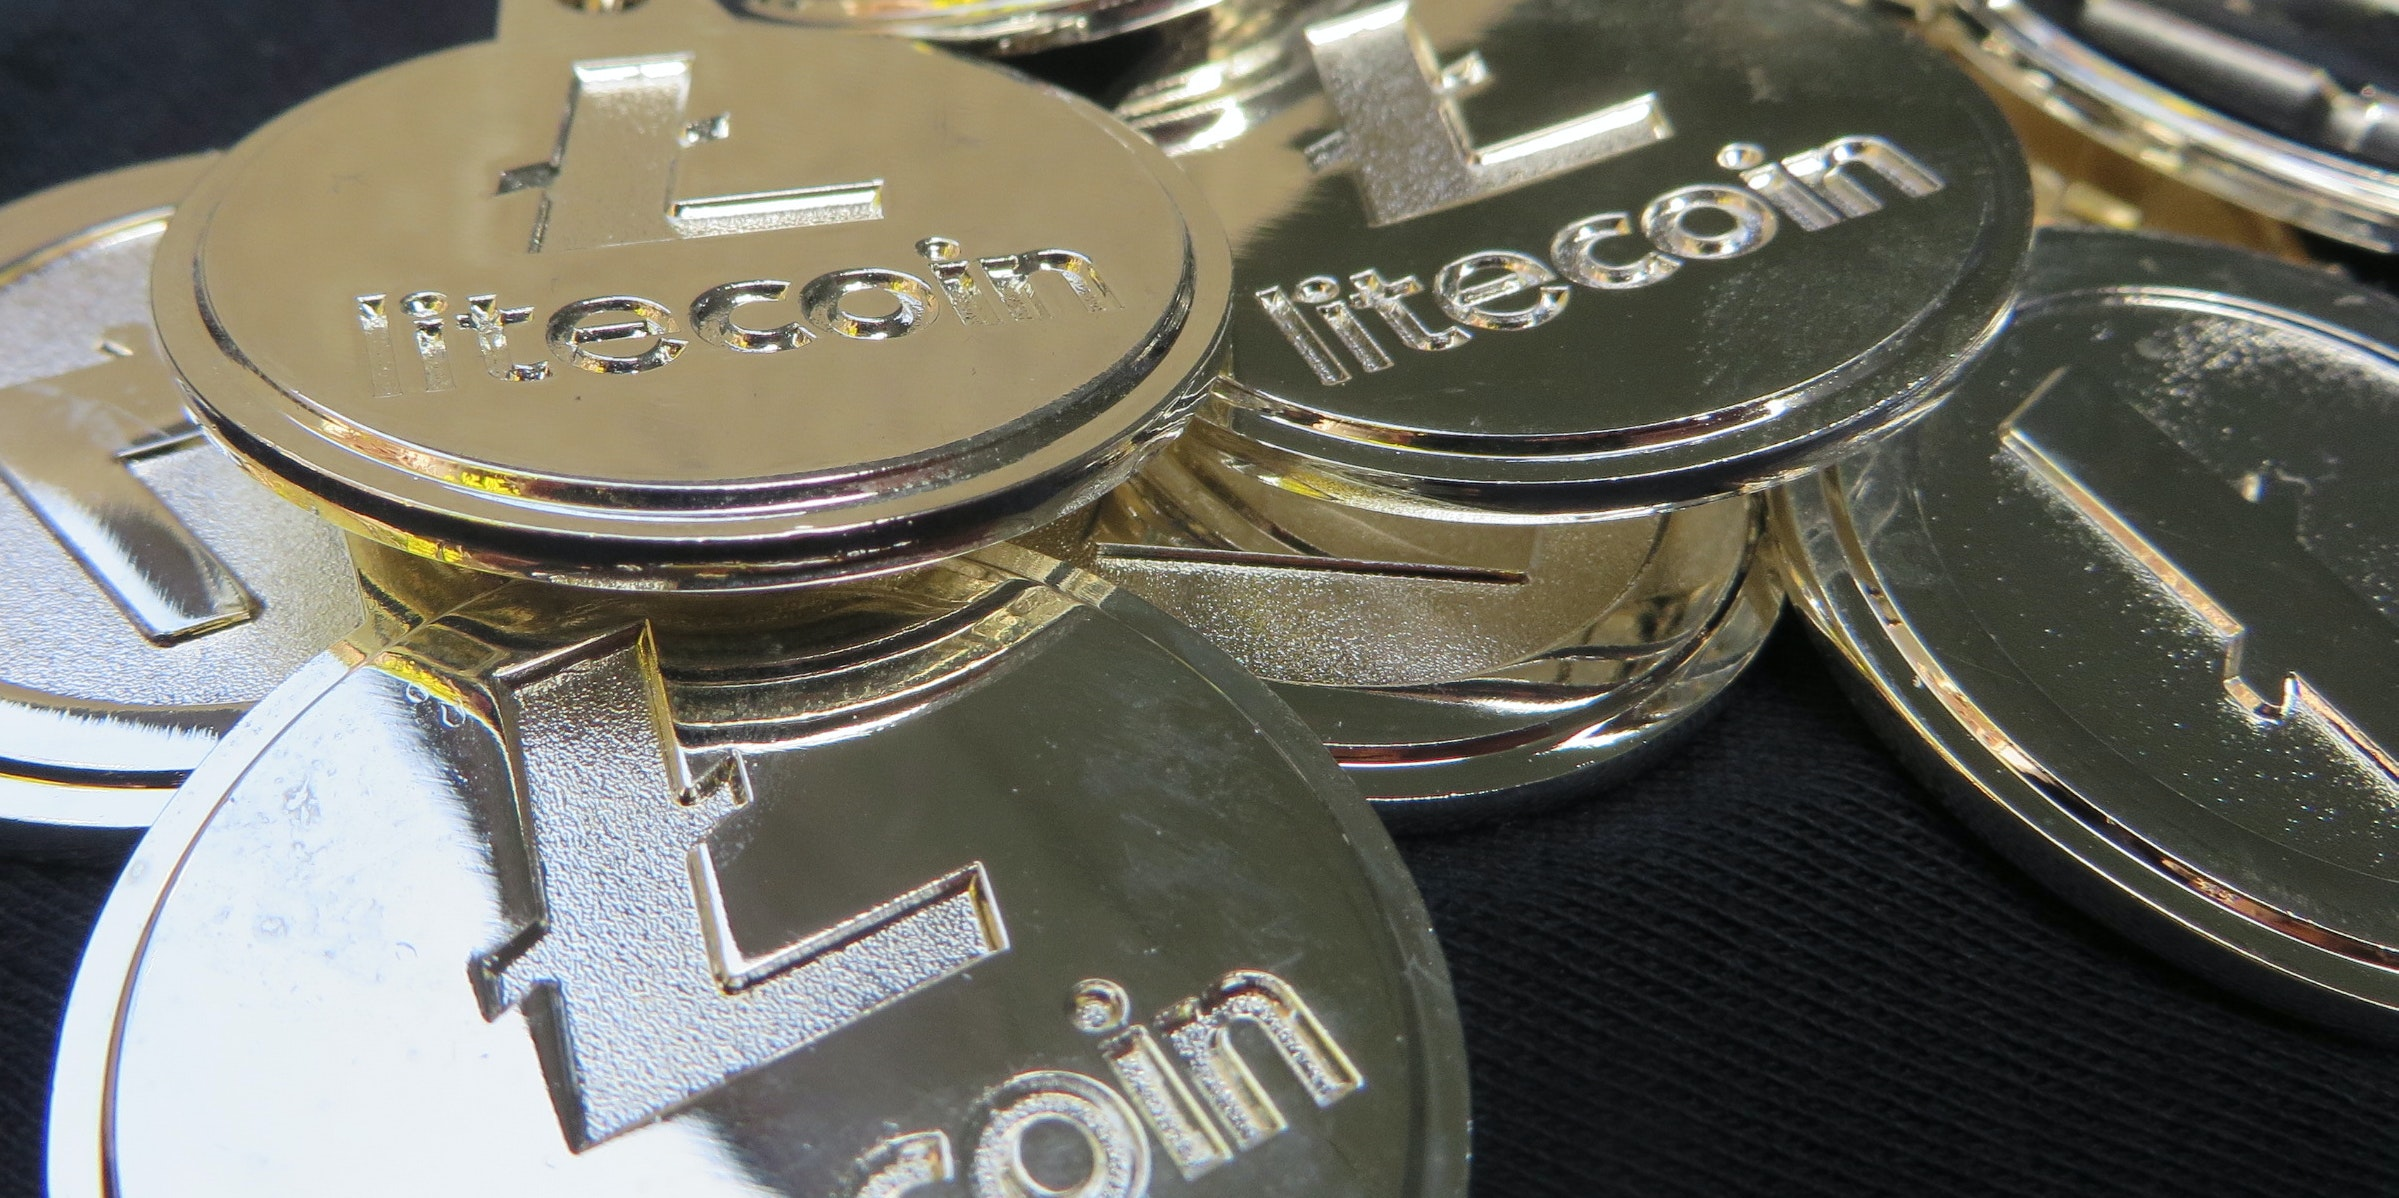 Litecoin Cash Price: Why Cryptocurrency Is Soaring in Value